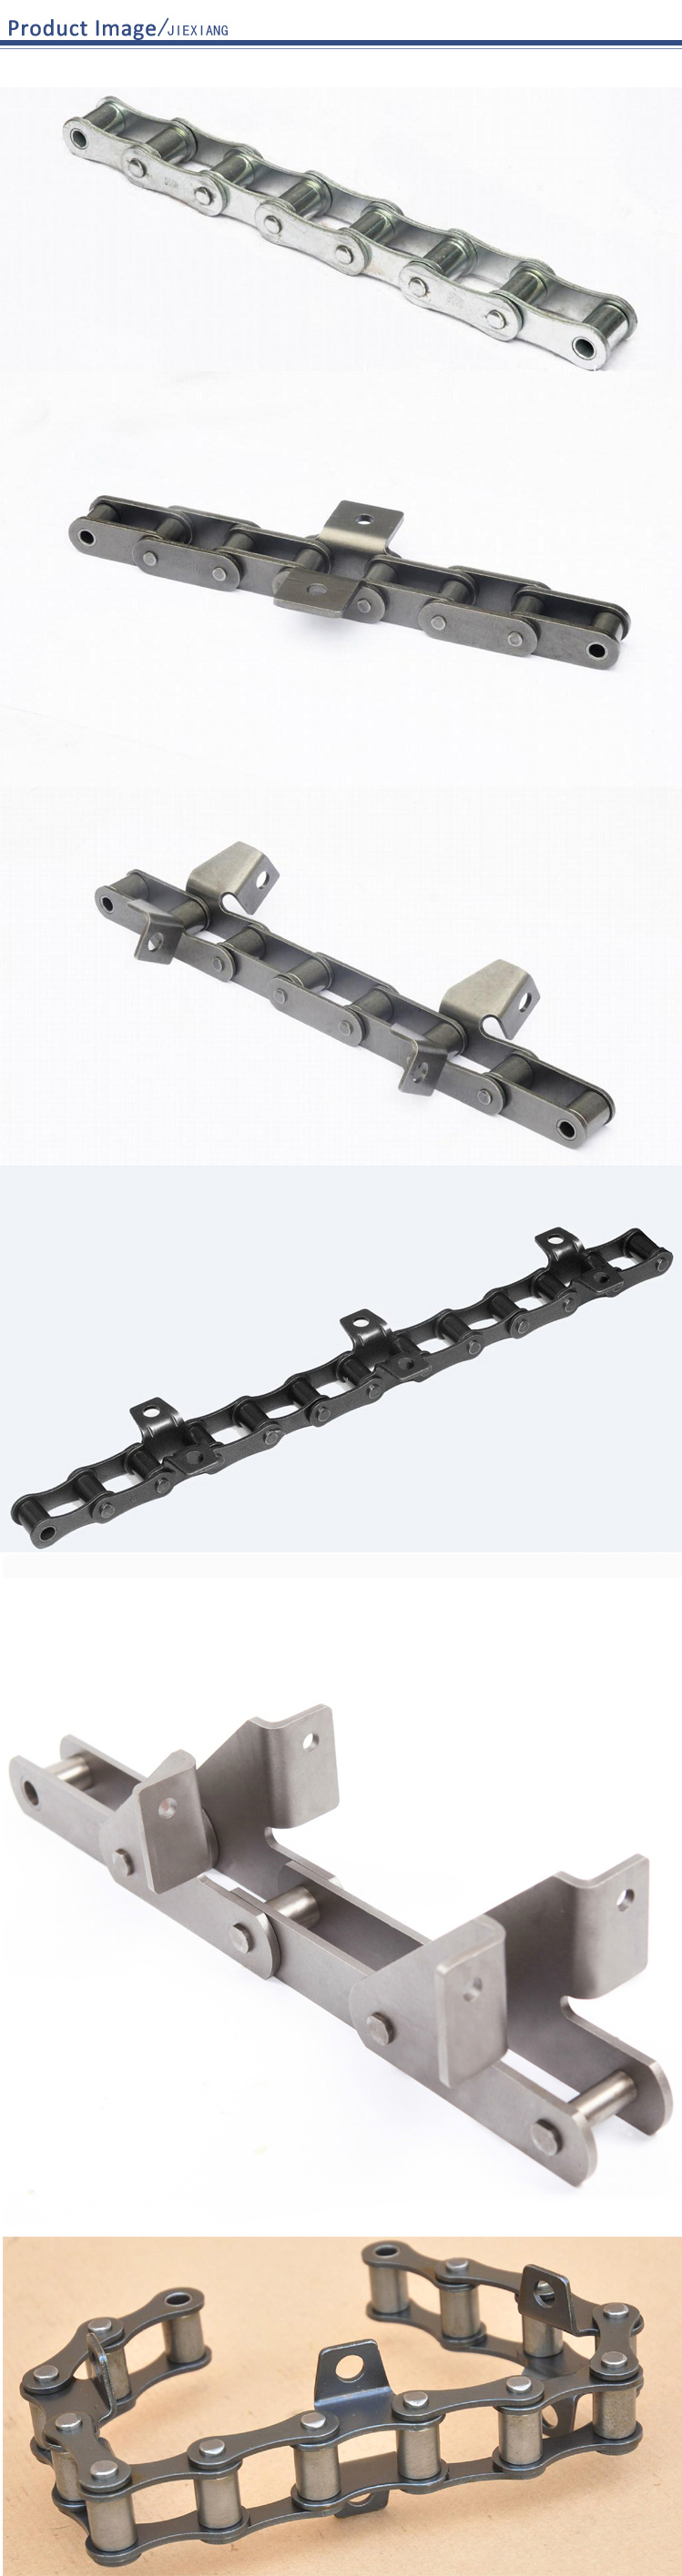 agricultural chain combine chains